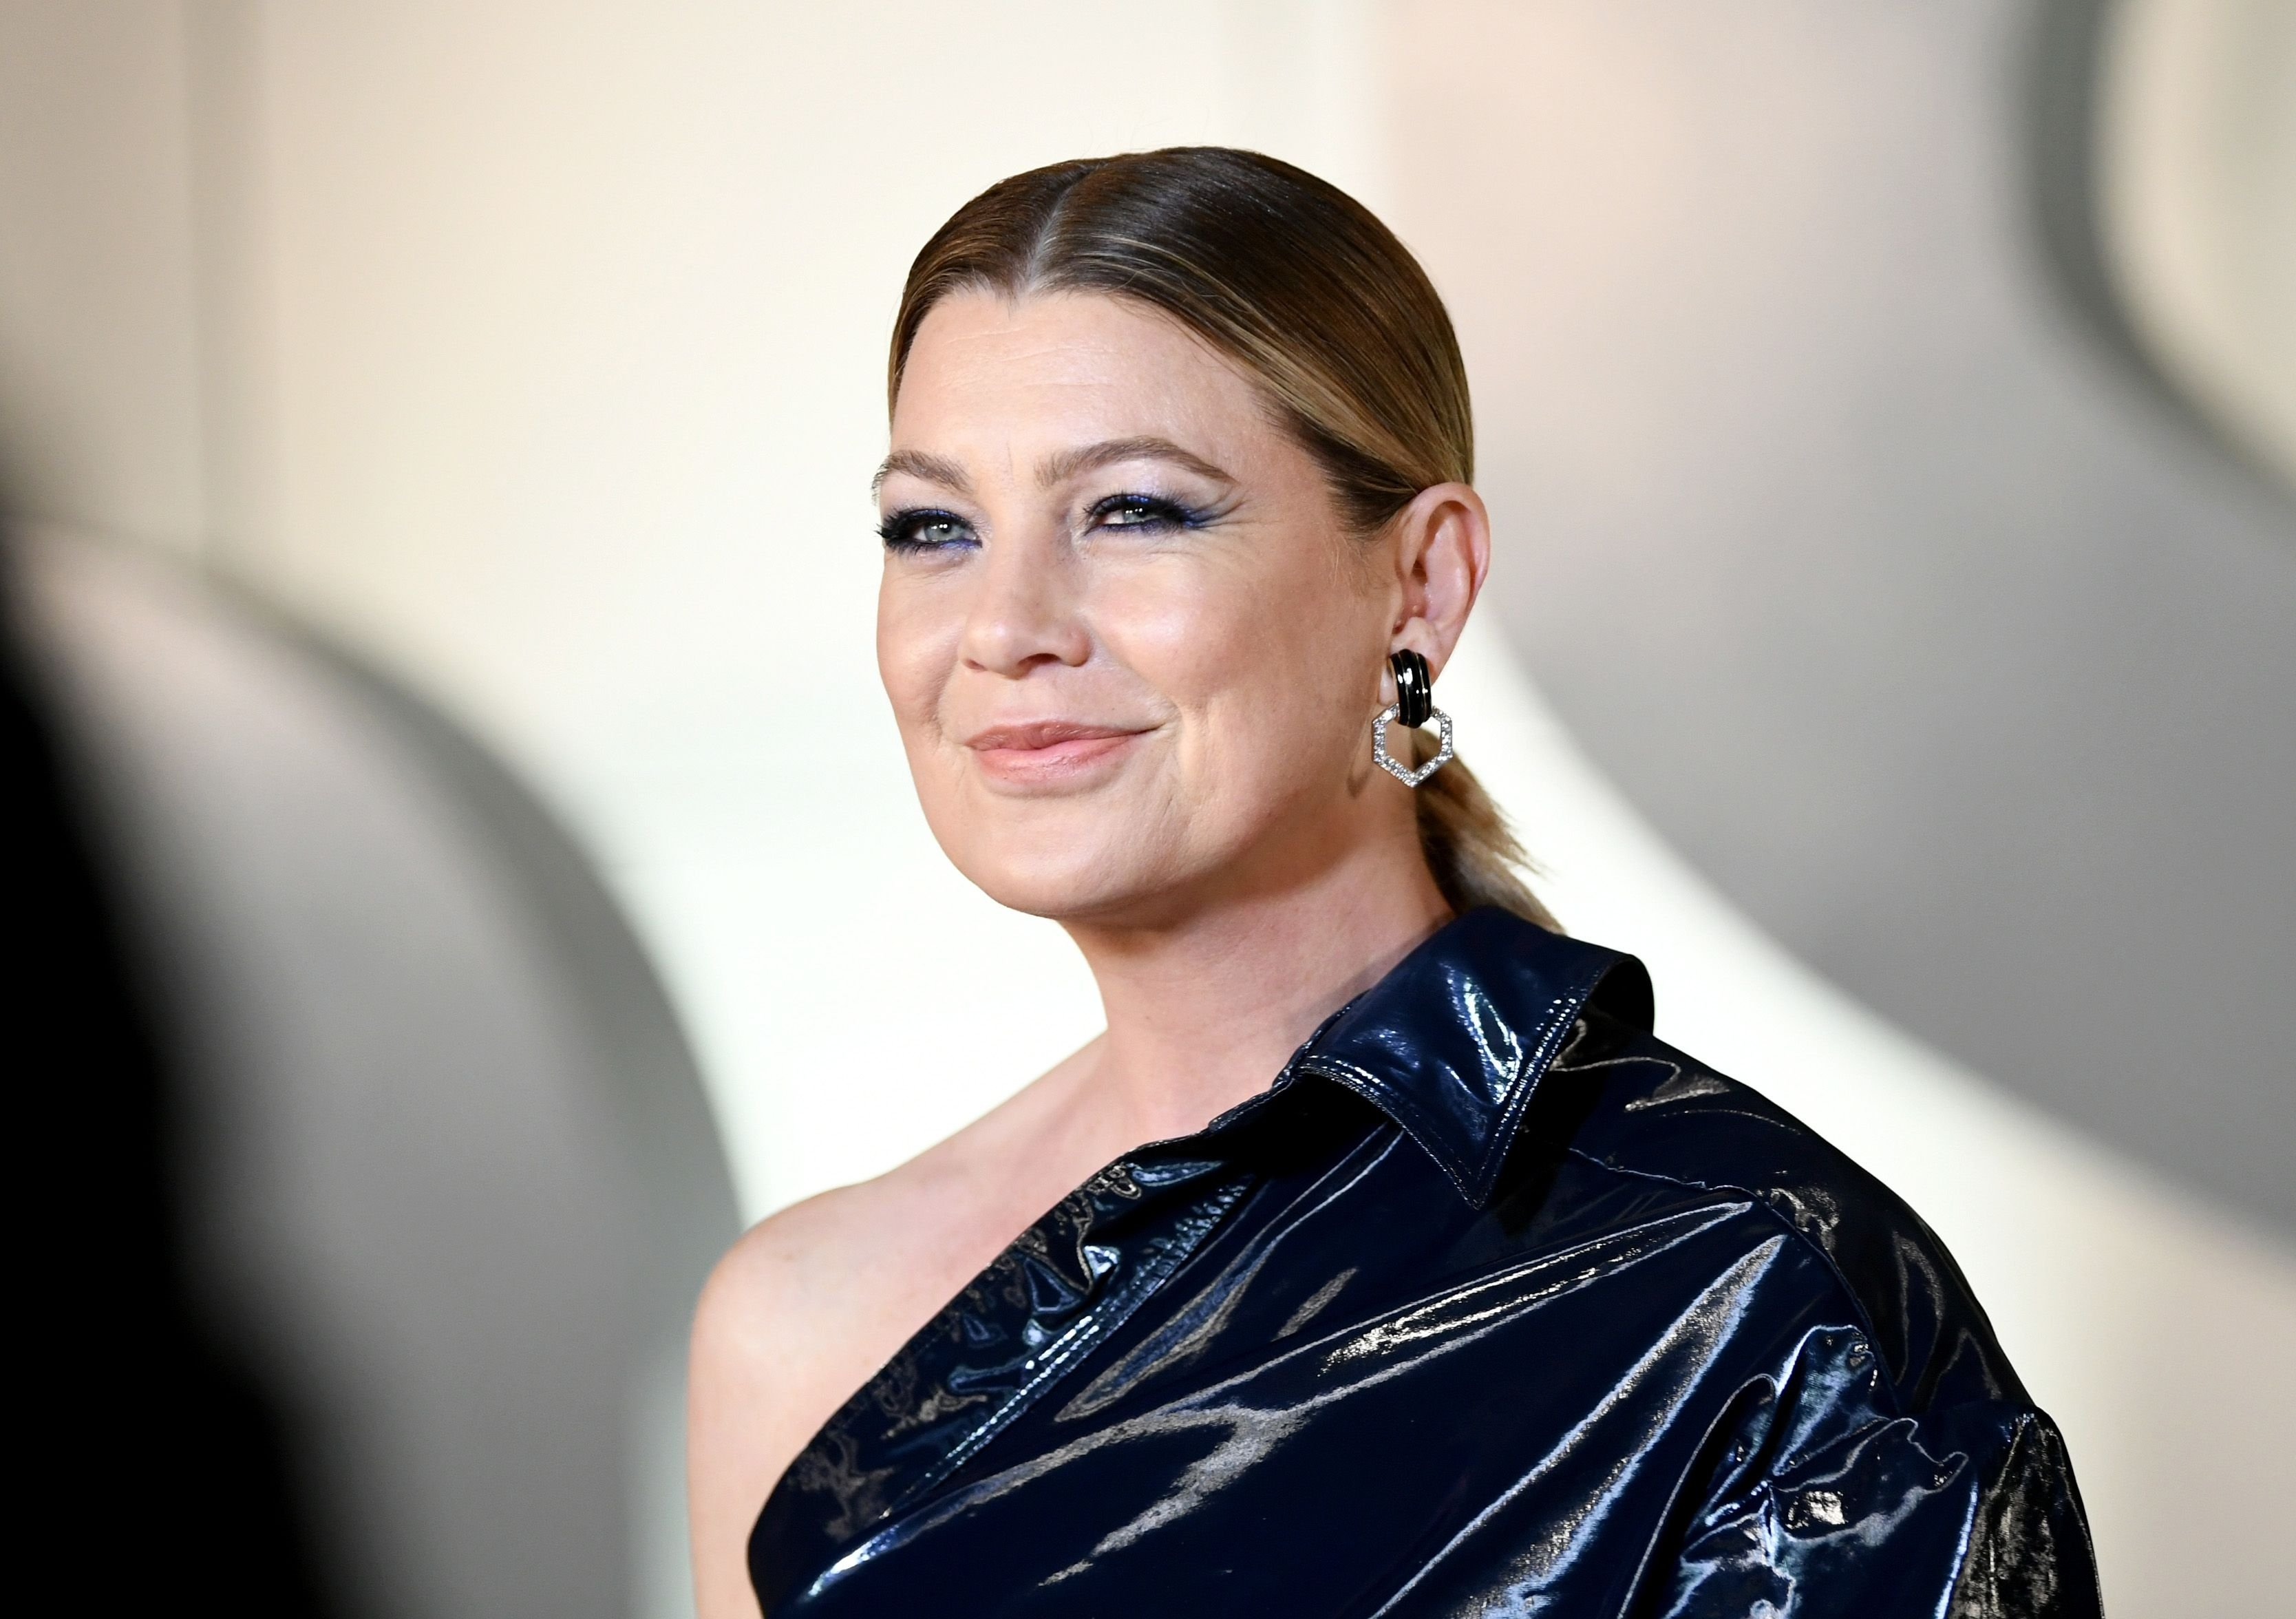 Ellen Pompeo attends the 2018 InStyle Awards at The Getty Center on October 22, 2018. | Source: Getty Images